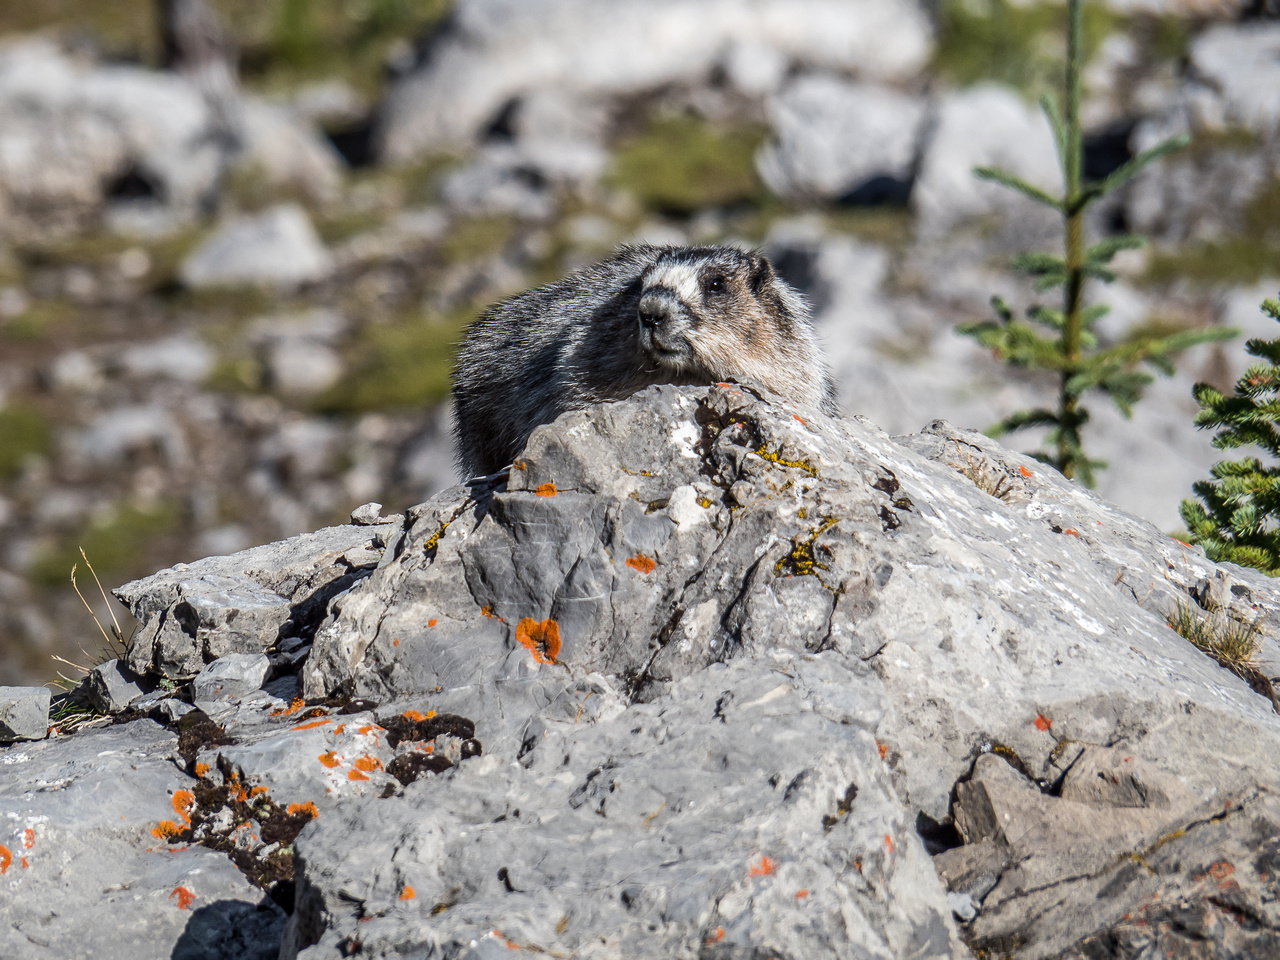 I have never seen so many marmots on a hike before. This is marmot heaven.